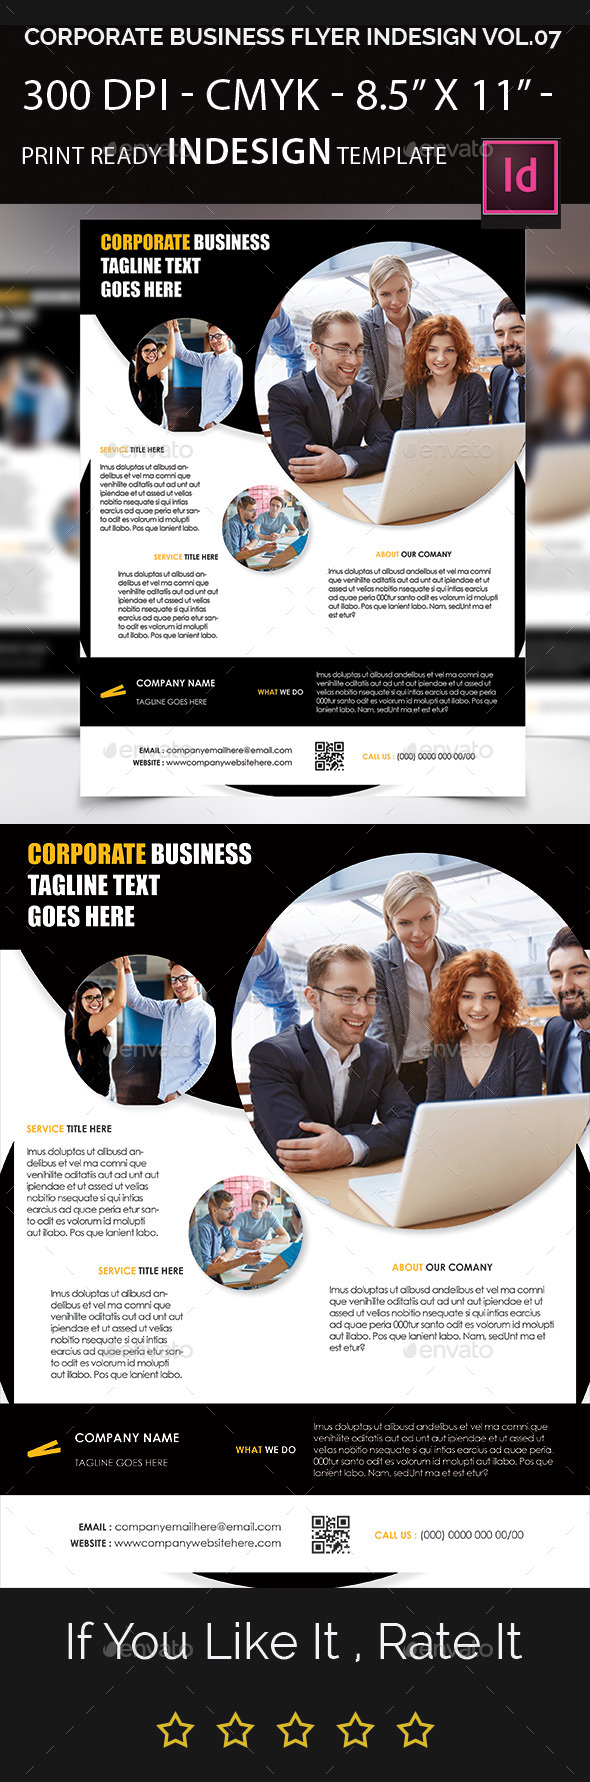 Corporate business flyer indesign template by arnabkumar for 8 5 x 11 brochure template indesign